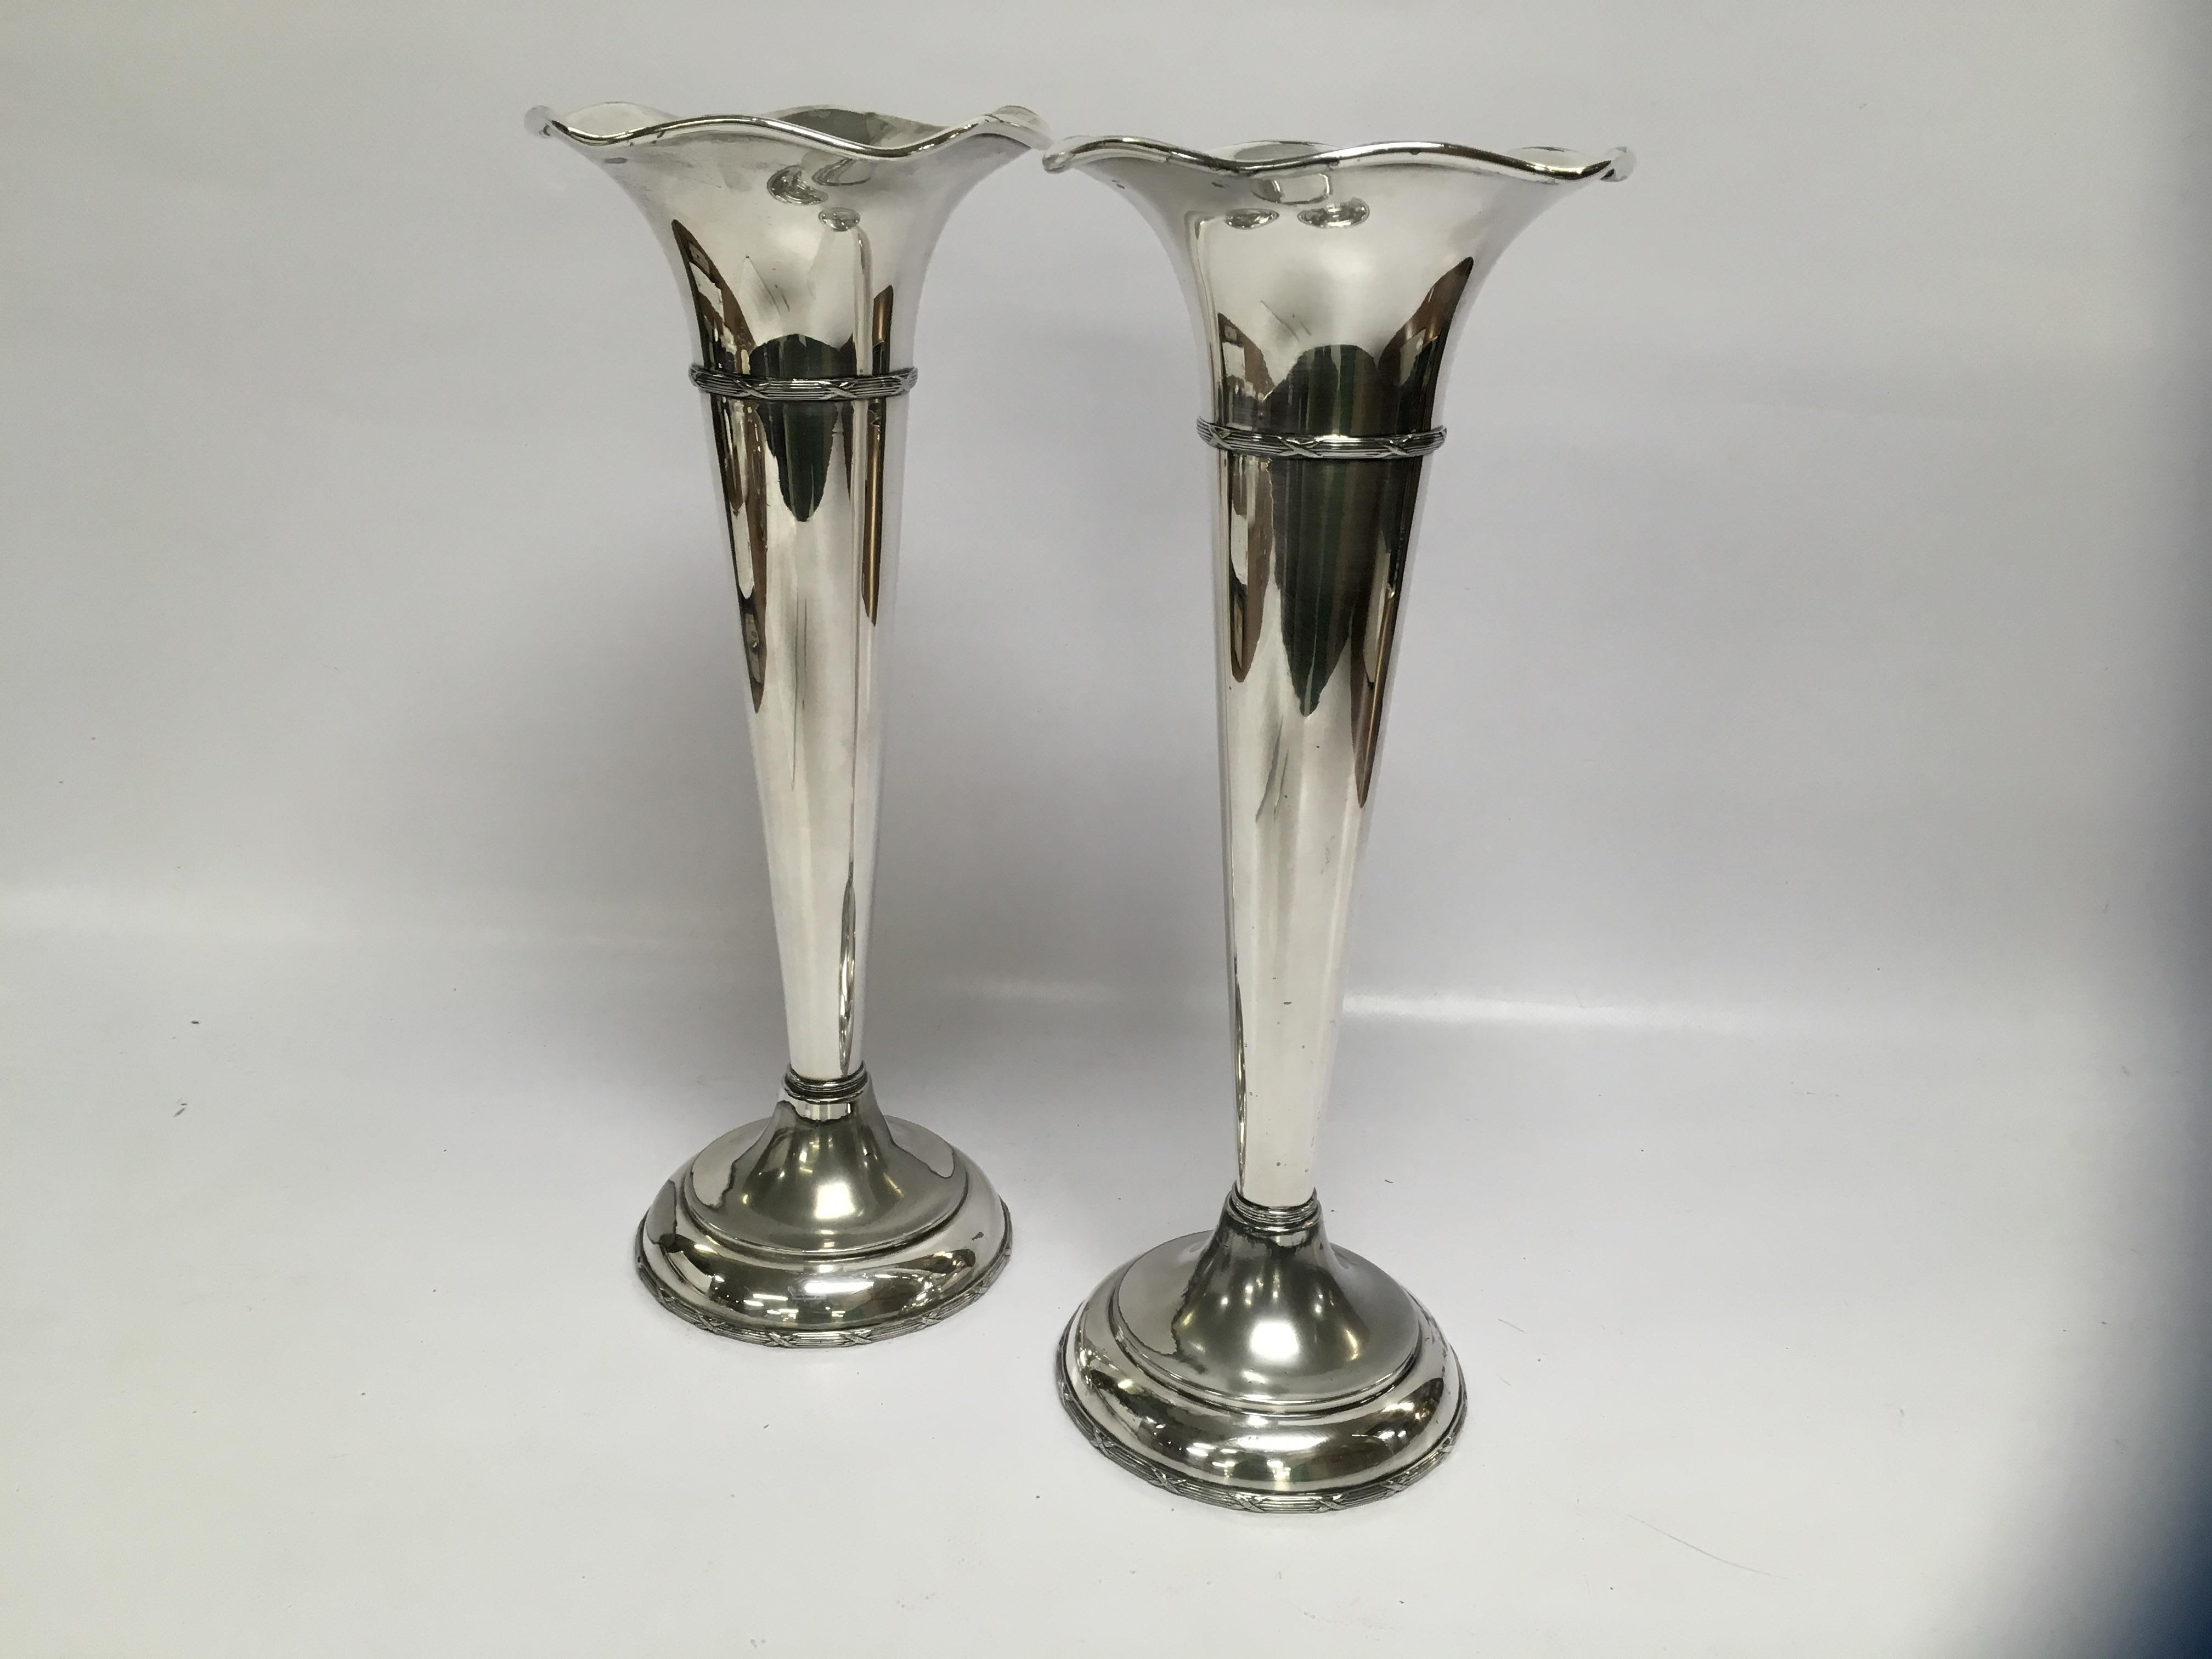 Lot 50 - PAIR OF LARGE SILVER PLATED TRUMPET VASES,